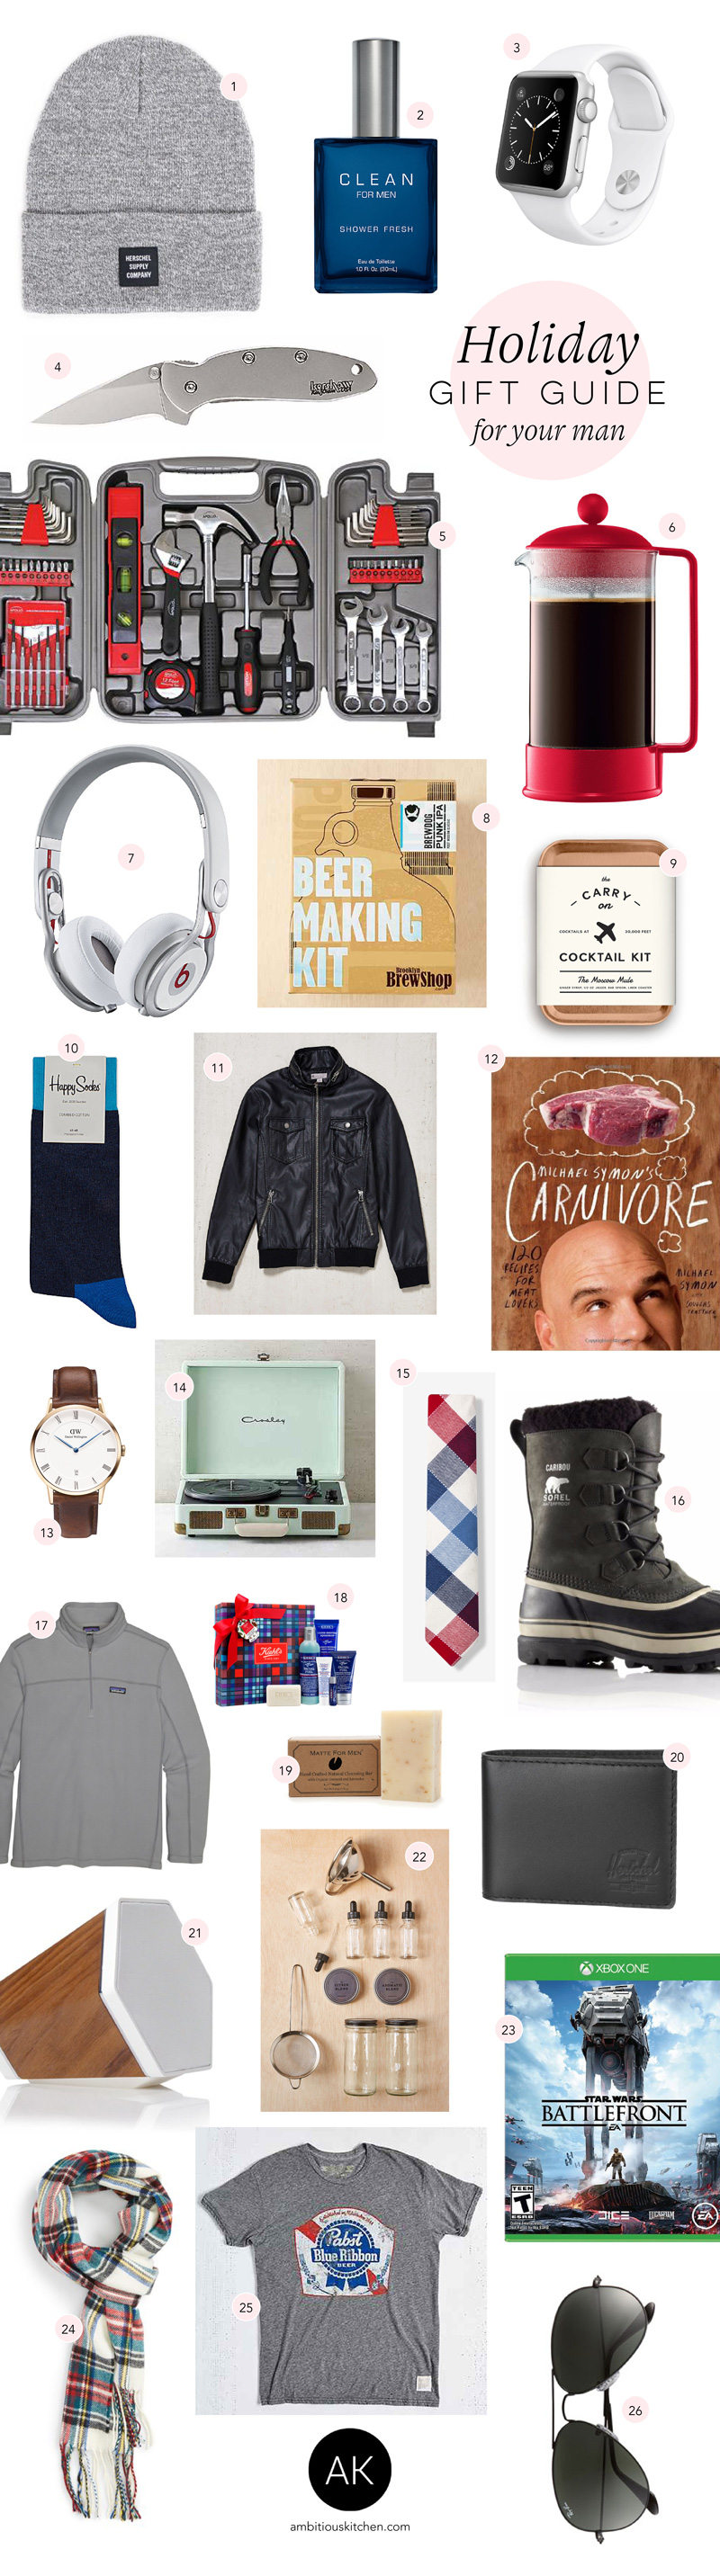 Ak Gift Guide 2015 For The Man In Your Life Ambitious Kitchen